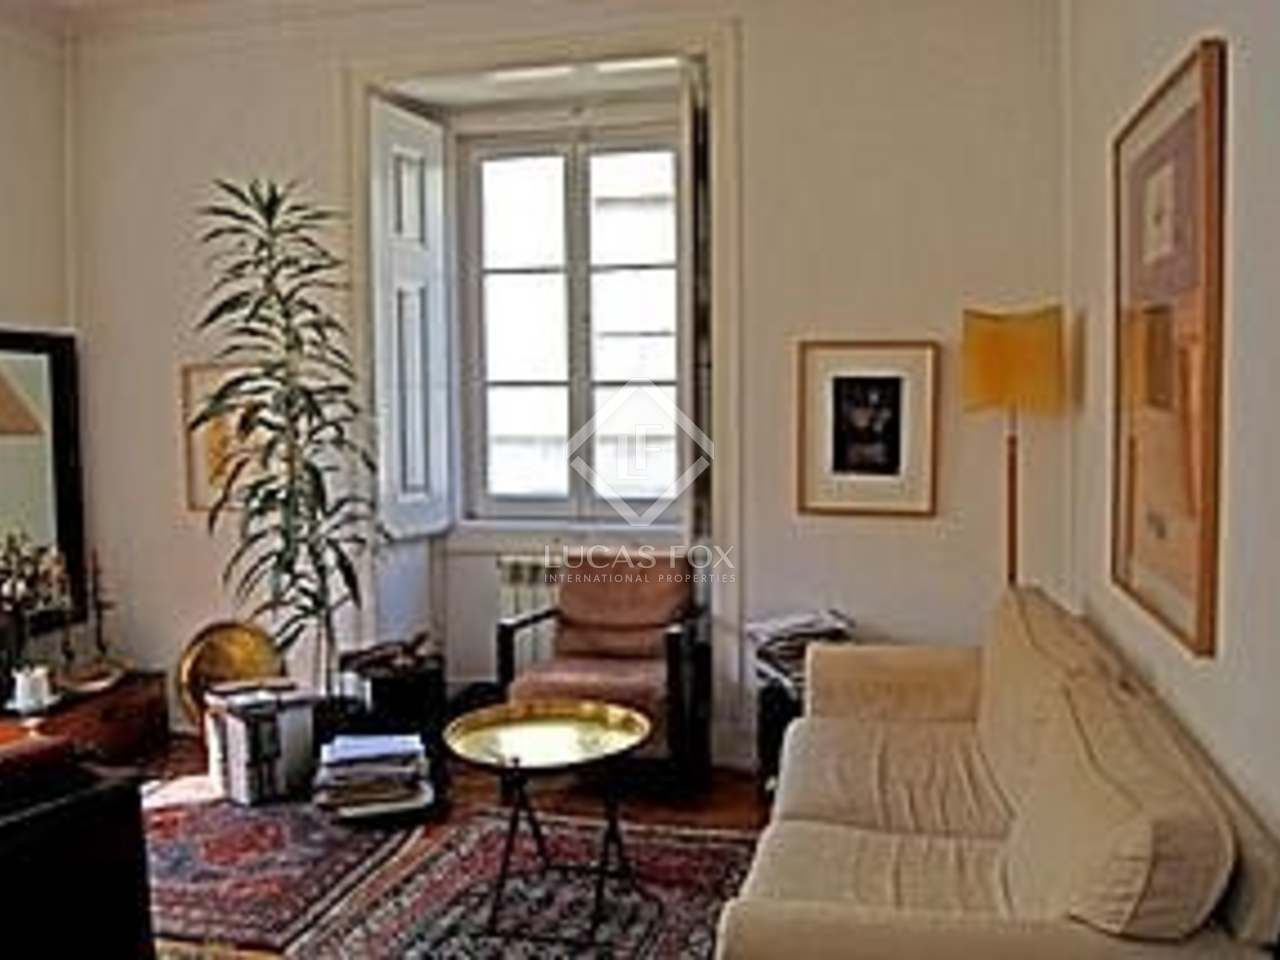 two bedroom flat to buy in Principe Real district of Lisbon